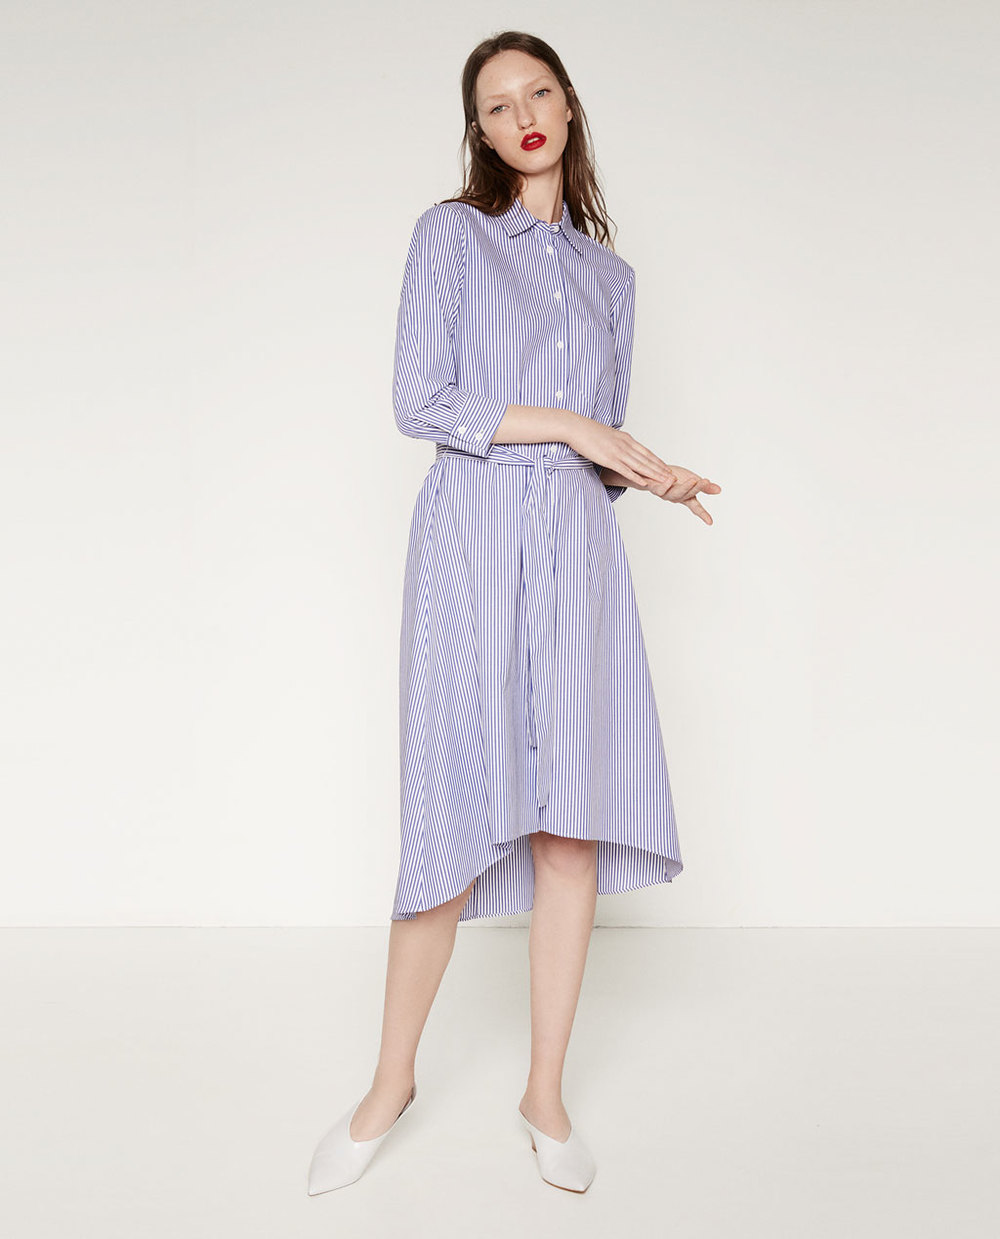 The Striped Shirtdress, Zara - £44.99